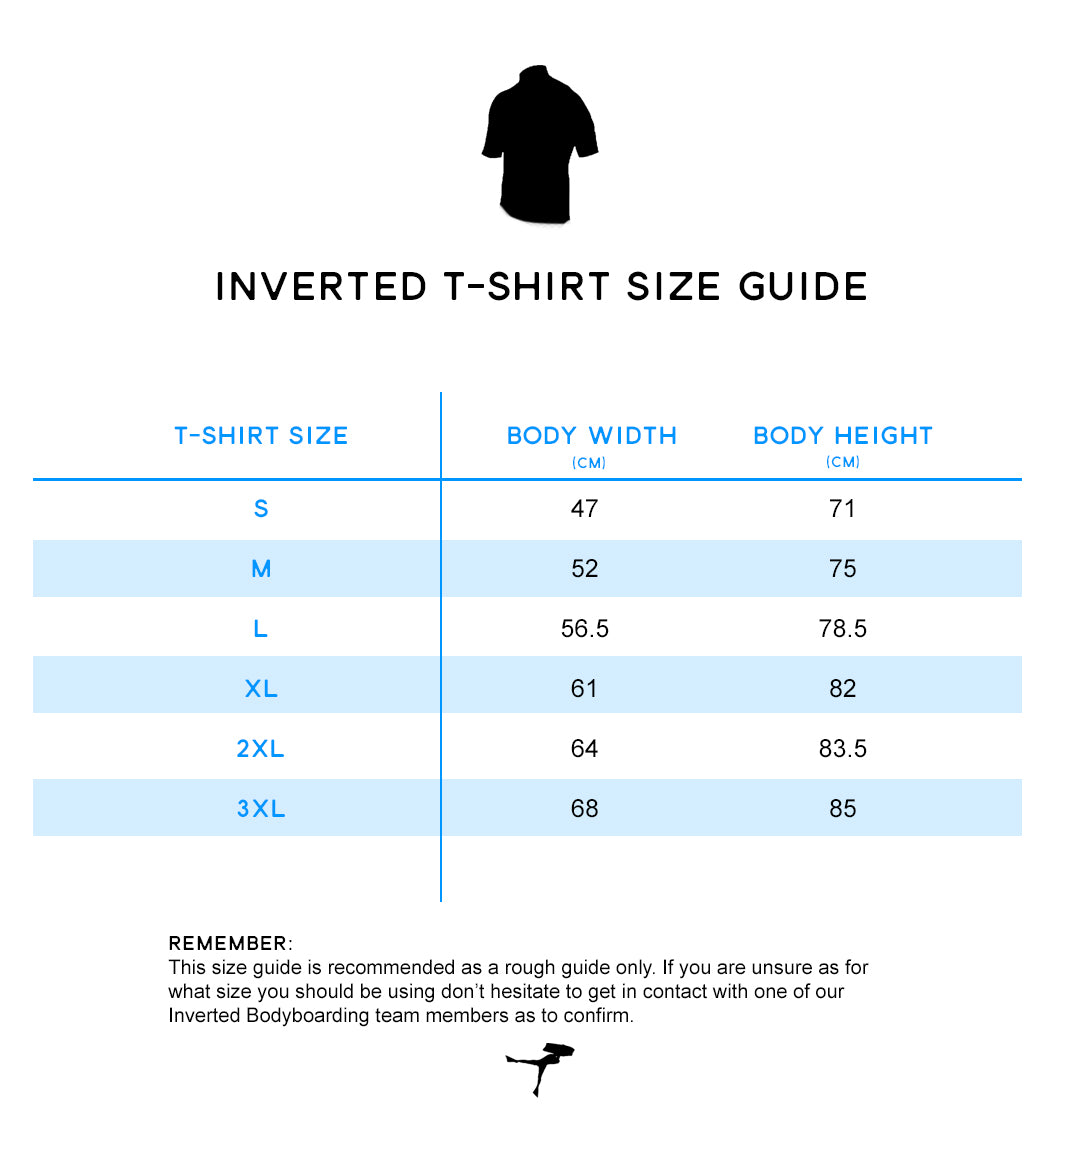 Inverted Clothing Size Guide